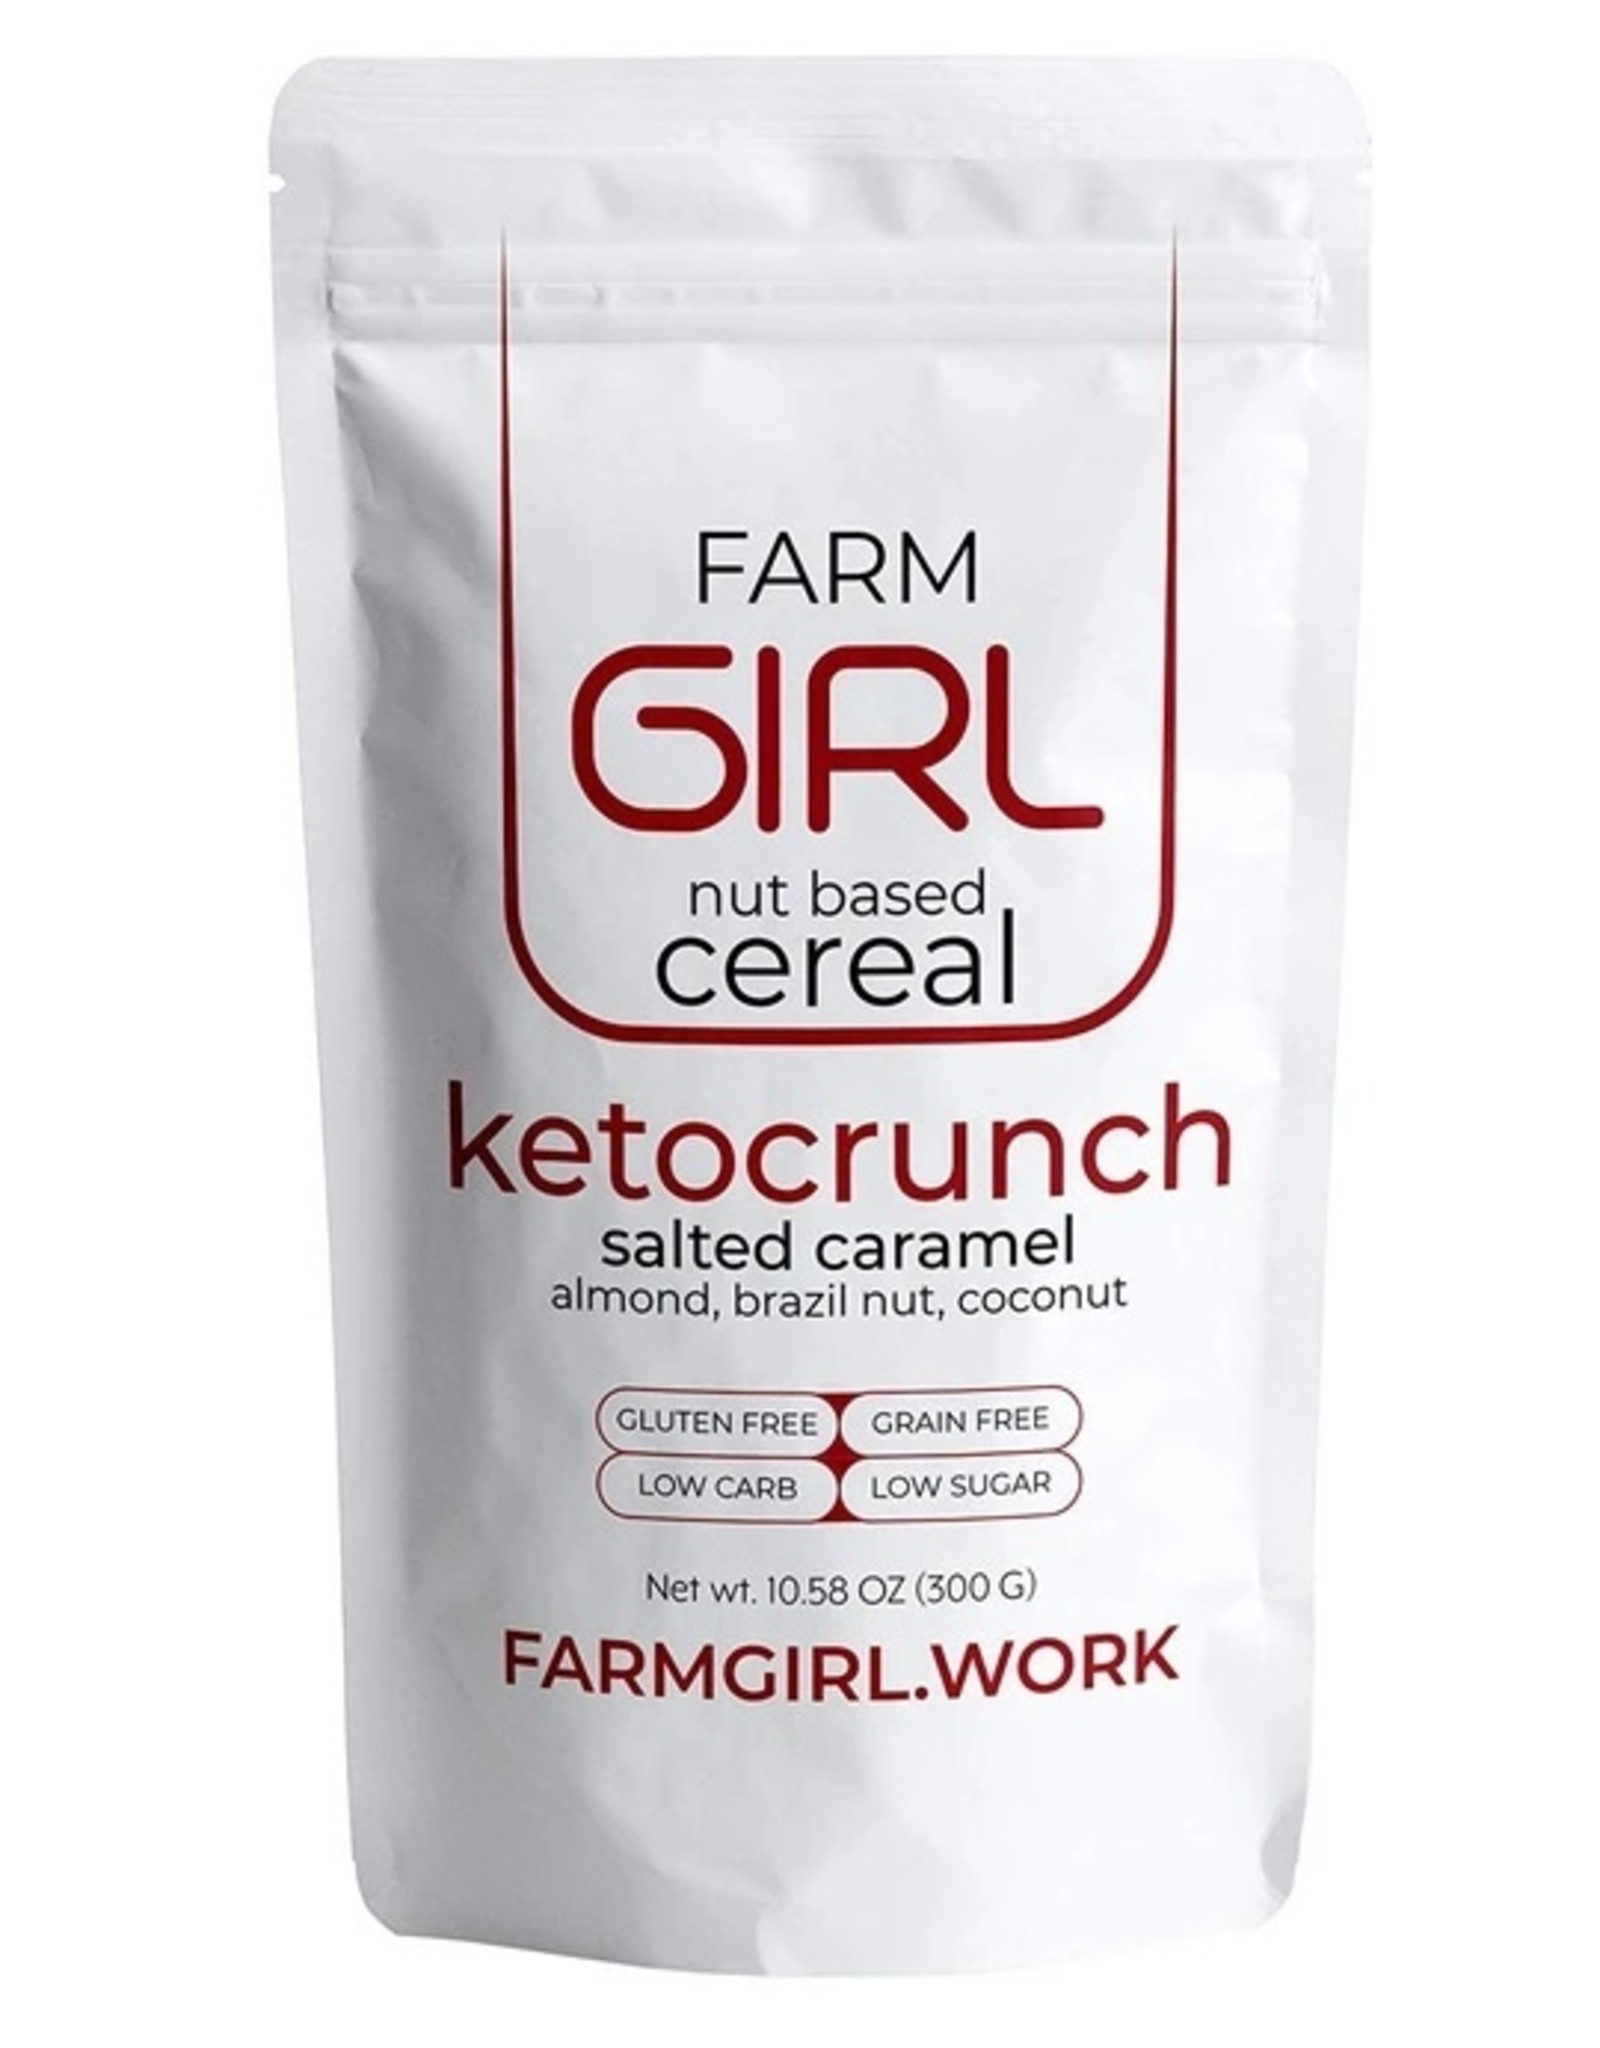 Farm Girl Farm Girl - Nut Based Cereal, Ketocrunch (300g)